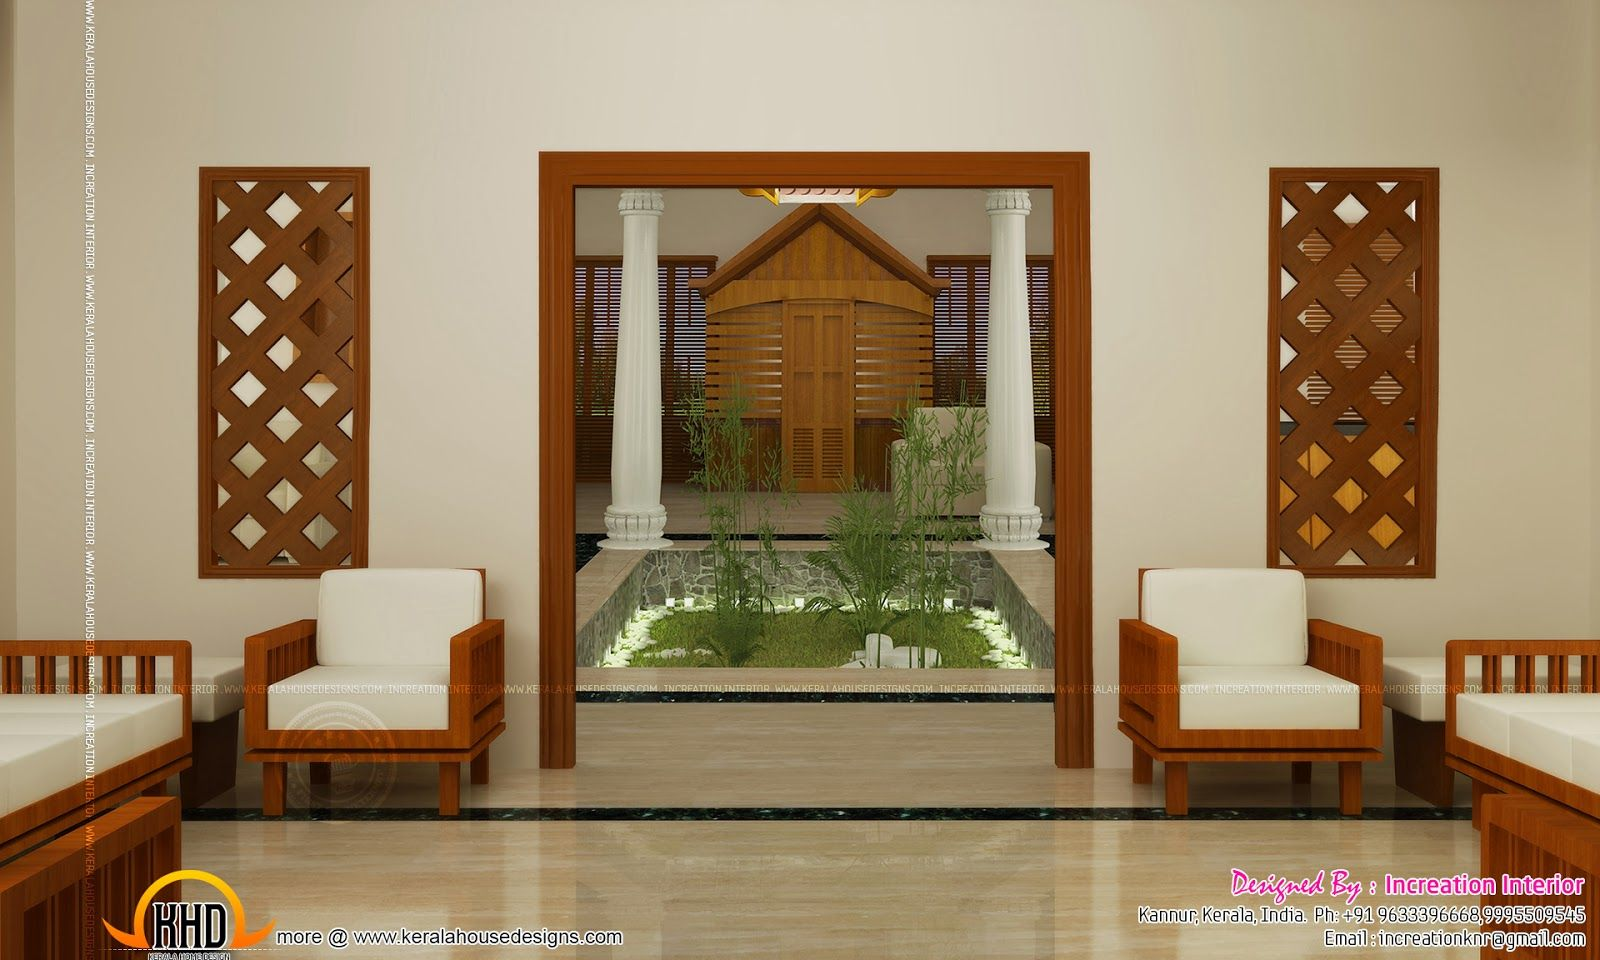 Gallery Of Kerala Home Design, Floor Plans, Elevations, Interiors Designs  And Other House Related Products